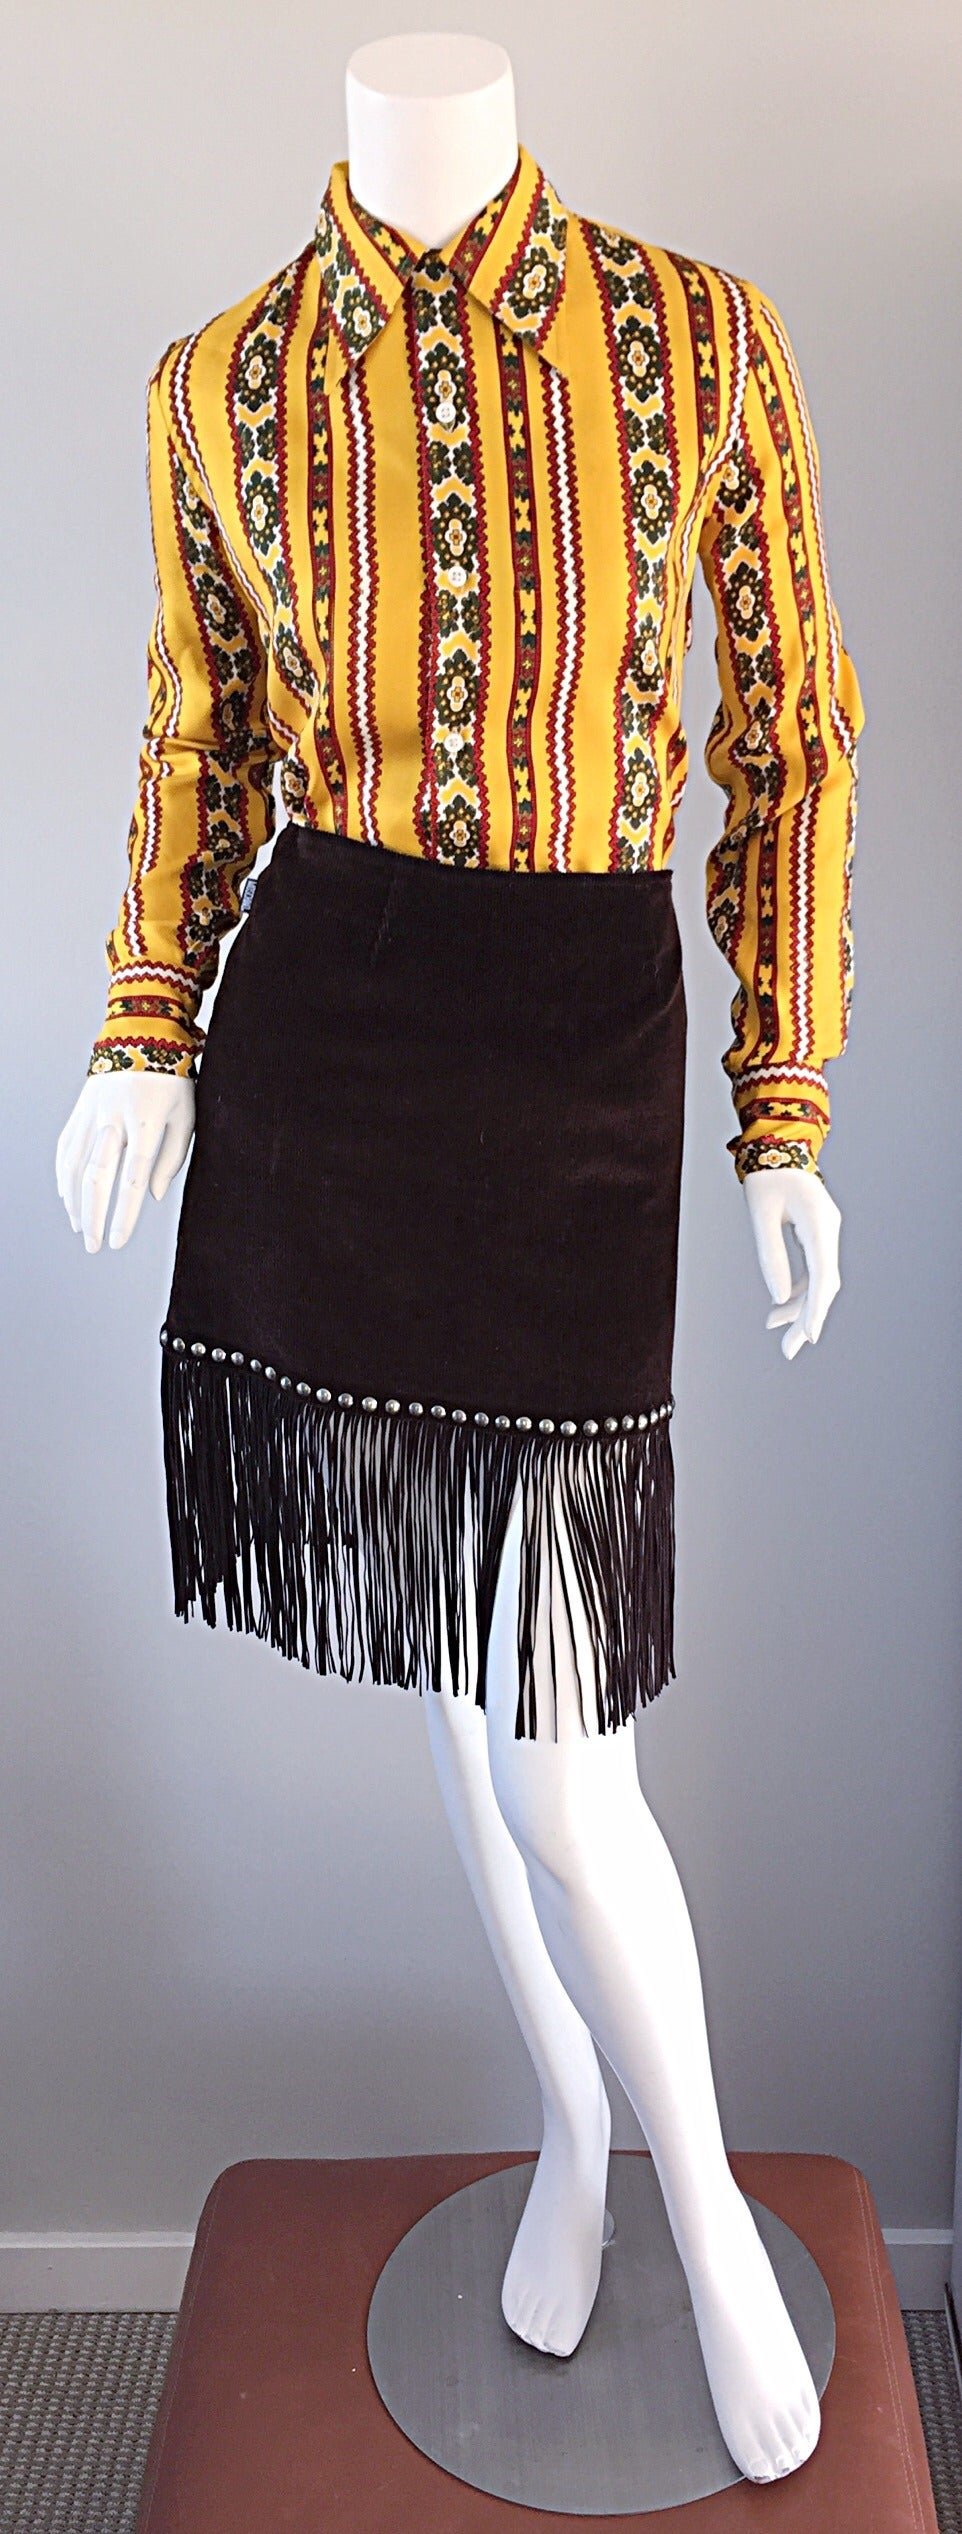 Vintage Moschino Brown Cotton Corduroy Studded 1990s 90s Fringe Mini Skirt 2